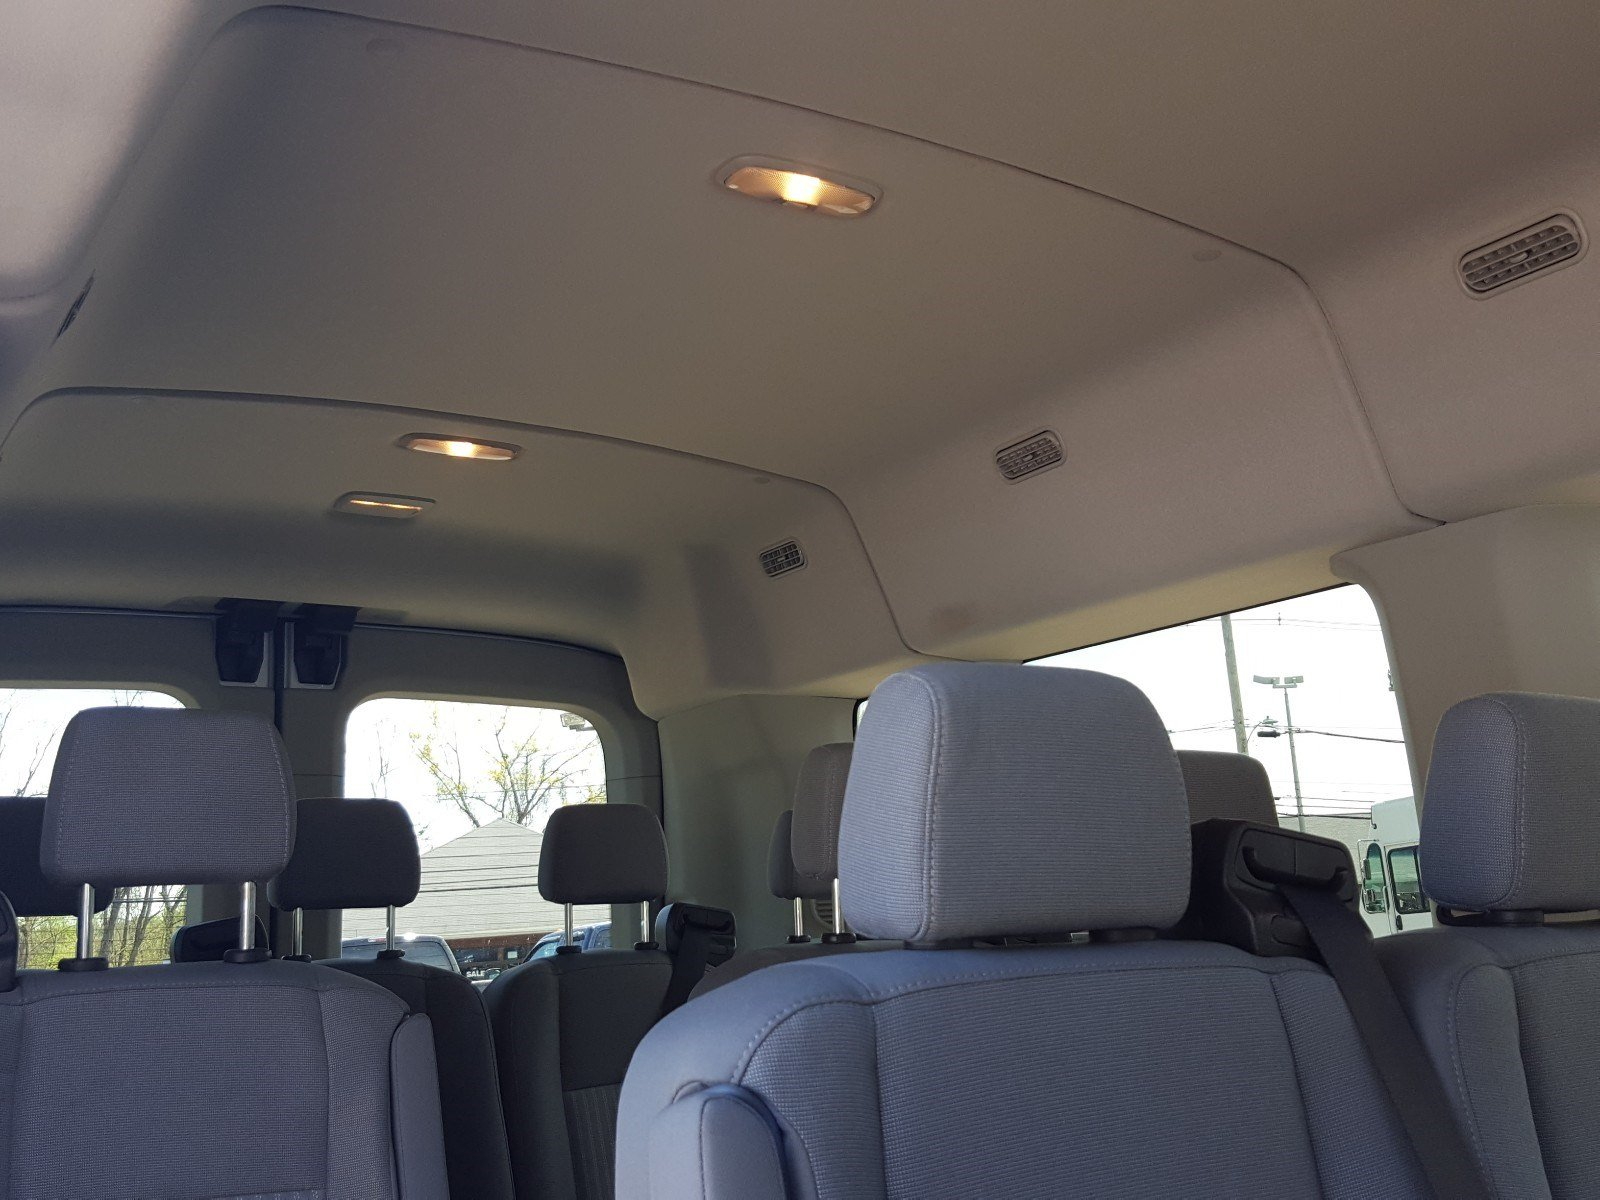 2017 Transit 350 Med Roof, Passenger Wagon #AT7474 - photo 9